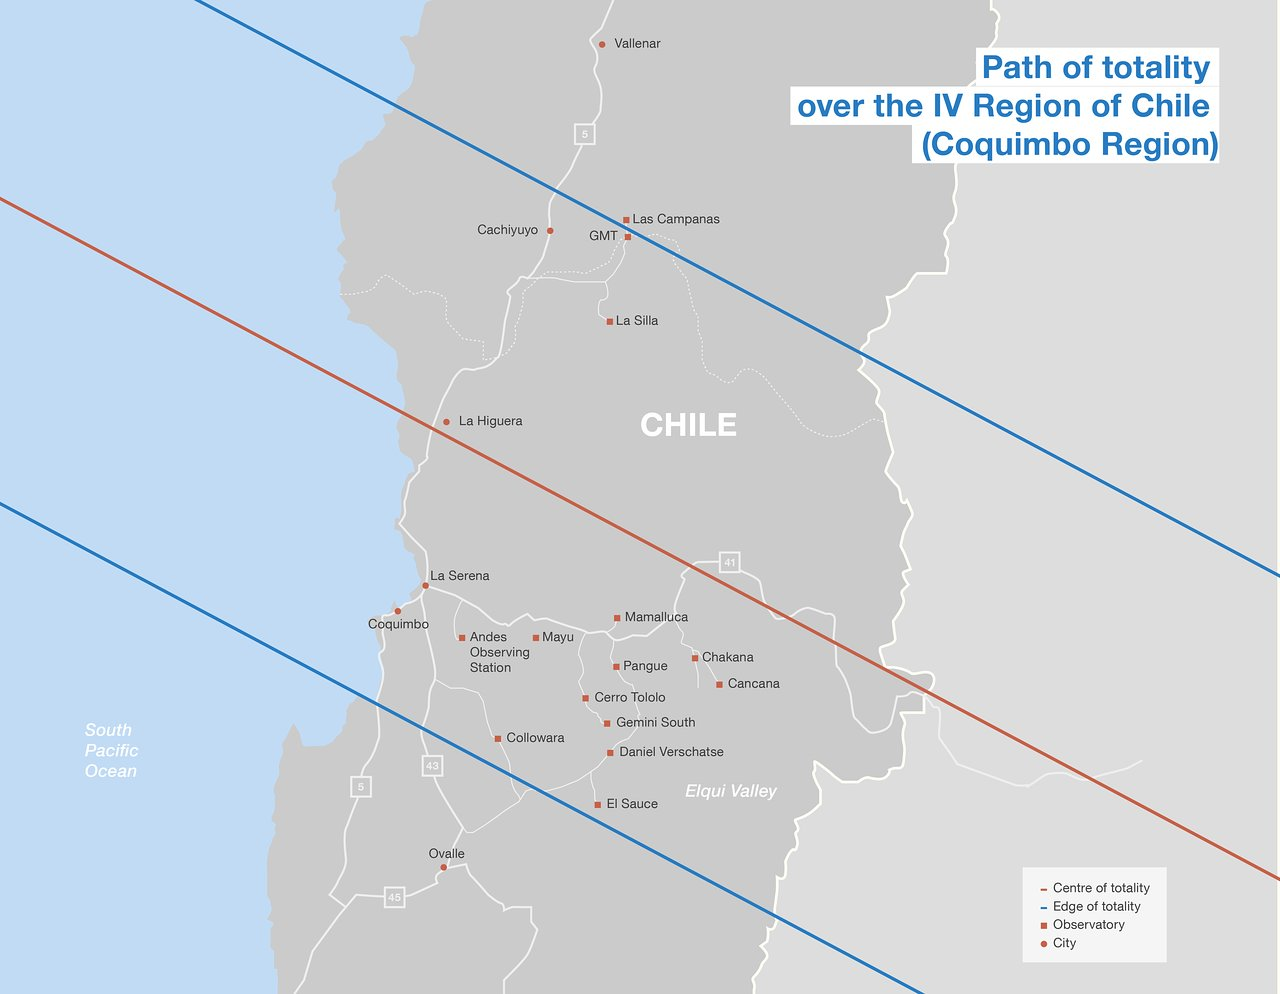 Total solar eclipse path in Chile | ESO Australia on turkmenistan in map, czech republic in map, antarctica in map, saudi arabia in map, central america in map, bahrain in map, brunei in map, togo in map, cook islands in map, mauritania in map, buenos aires in map, macedonia in map, andorra in map, south sudan in map, uzbekistan in map, luxembourg in map, saint lucia in map, sierra nevada in map, djibouti in map, jordan in map,